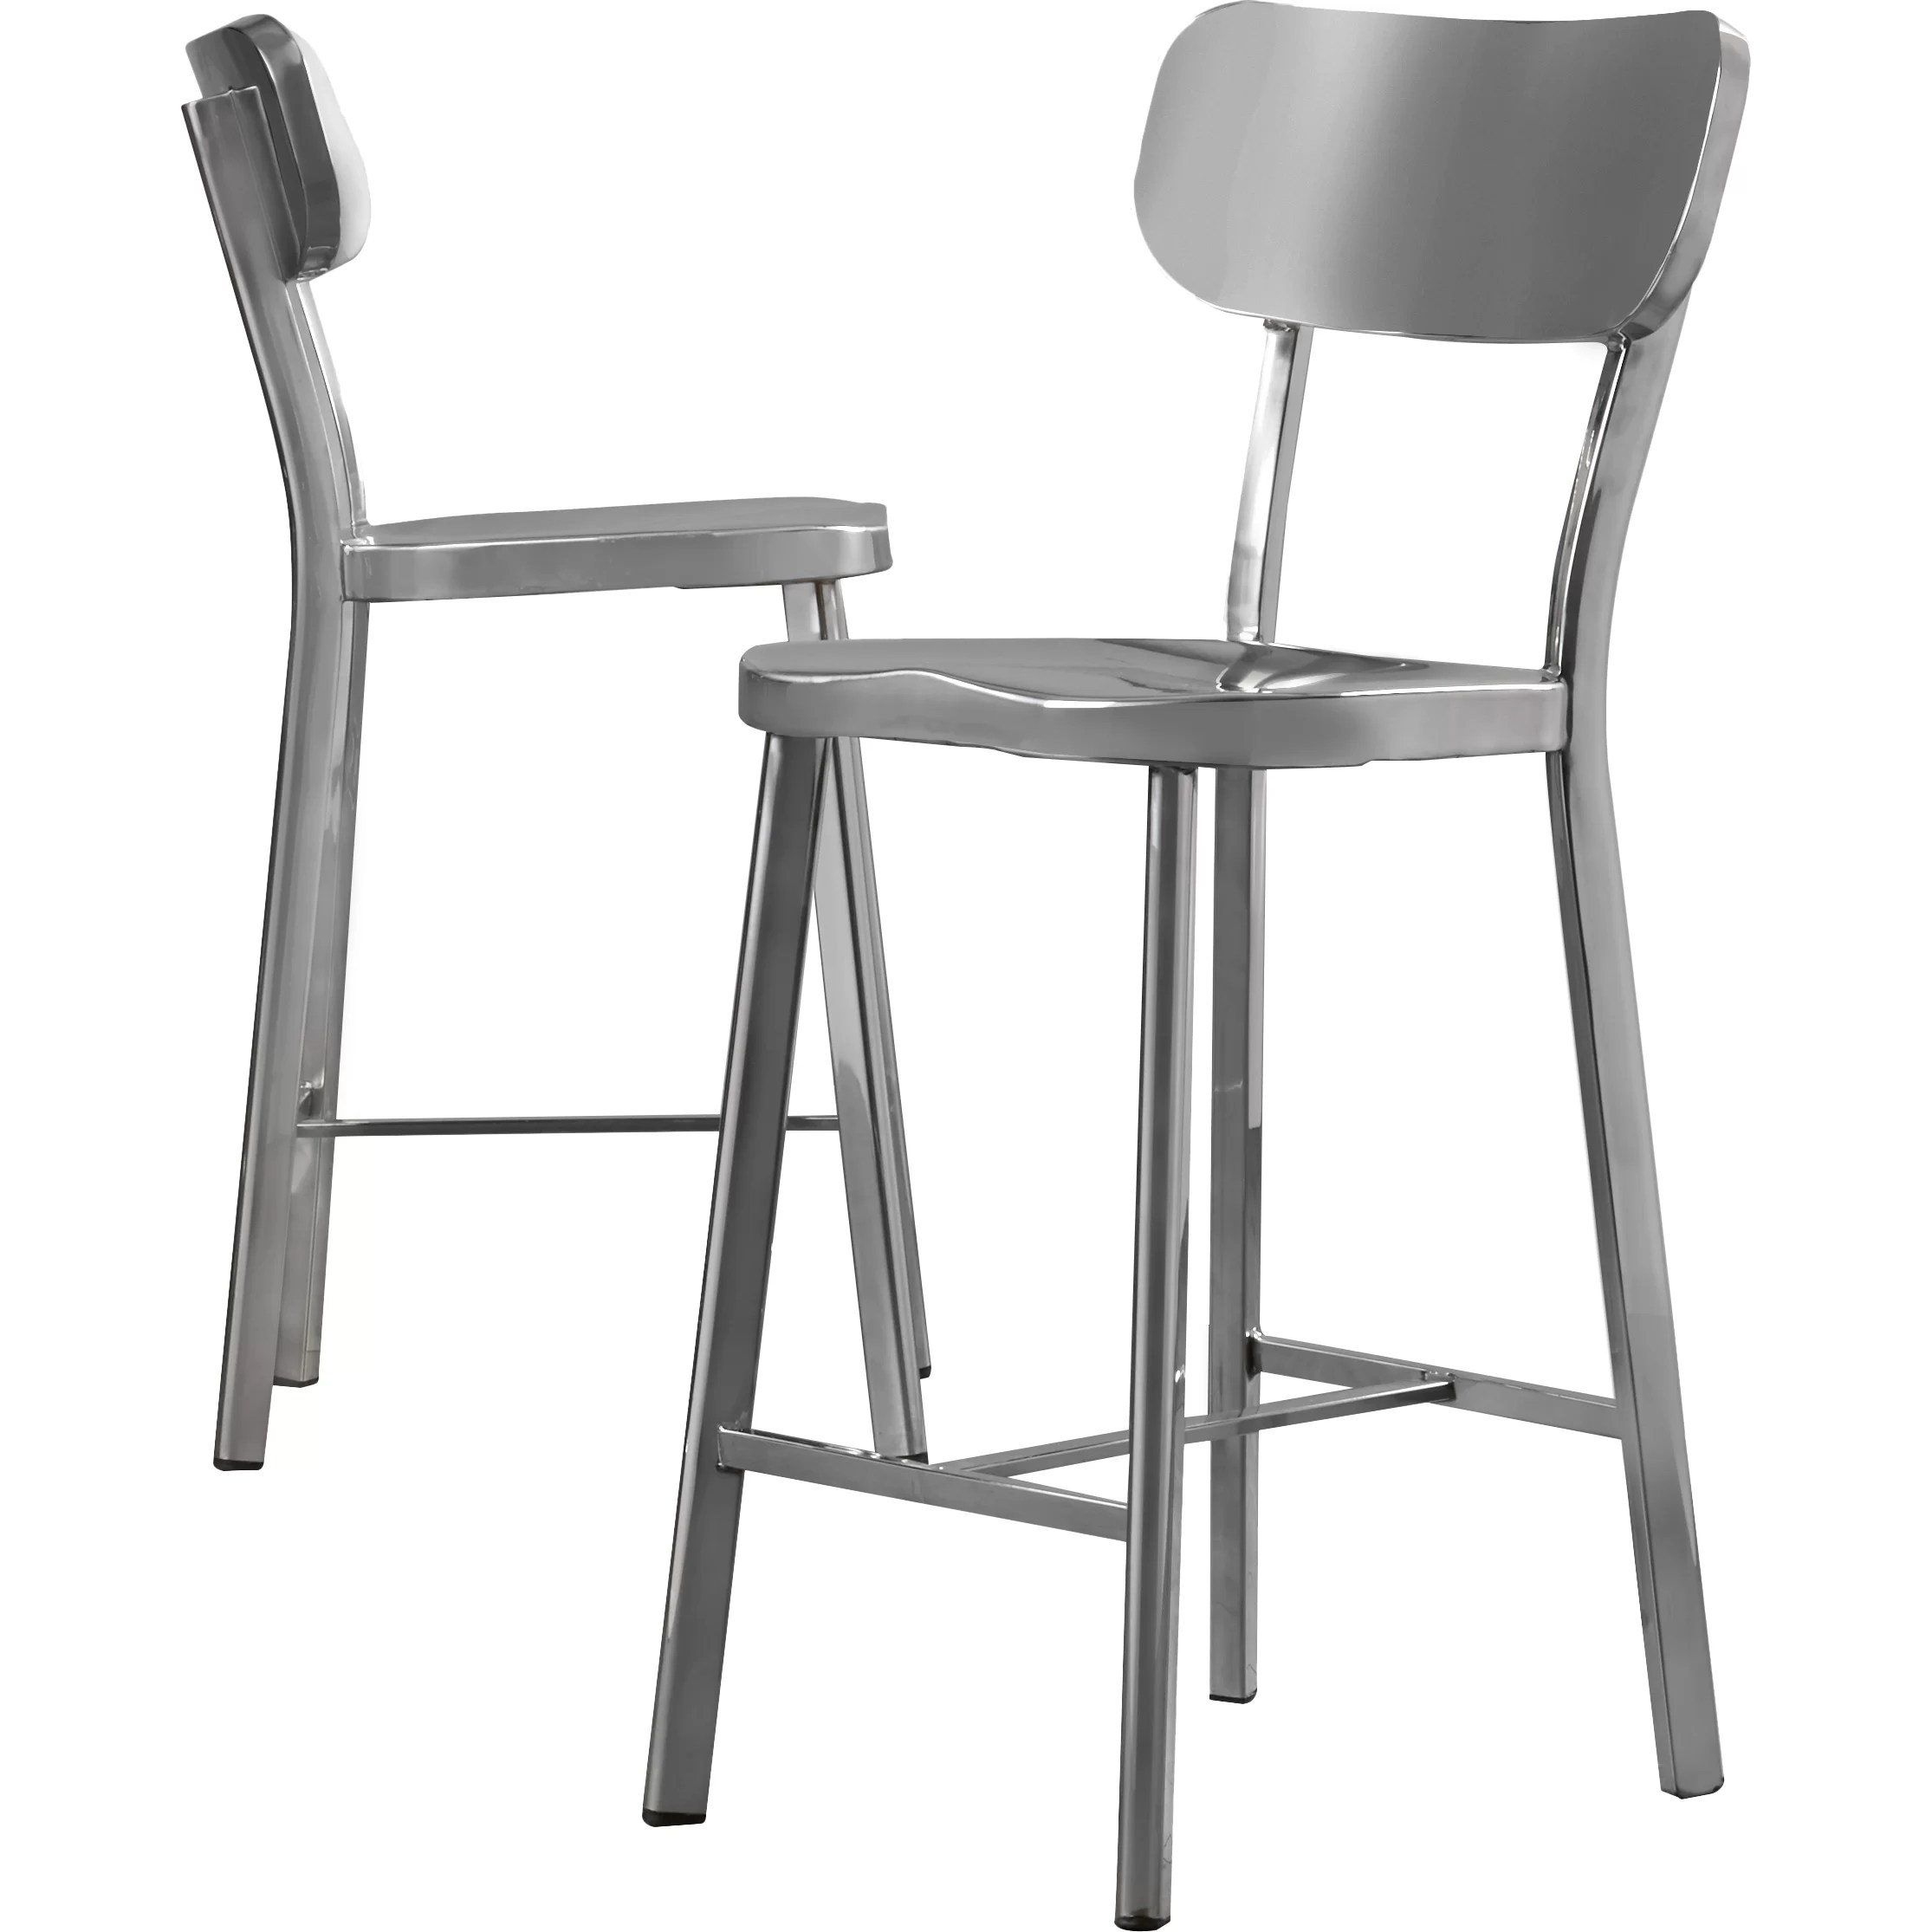 steel chair size rocking pads and cushions brayden studio rizzuto counter height stainless side